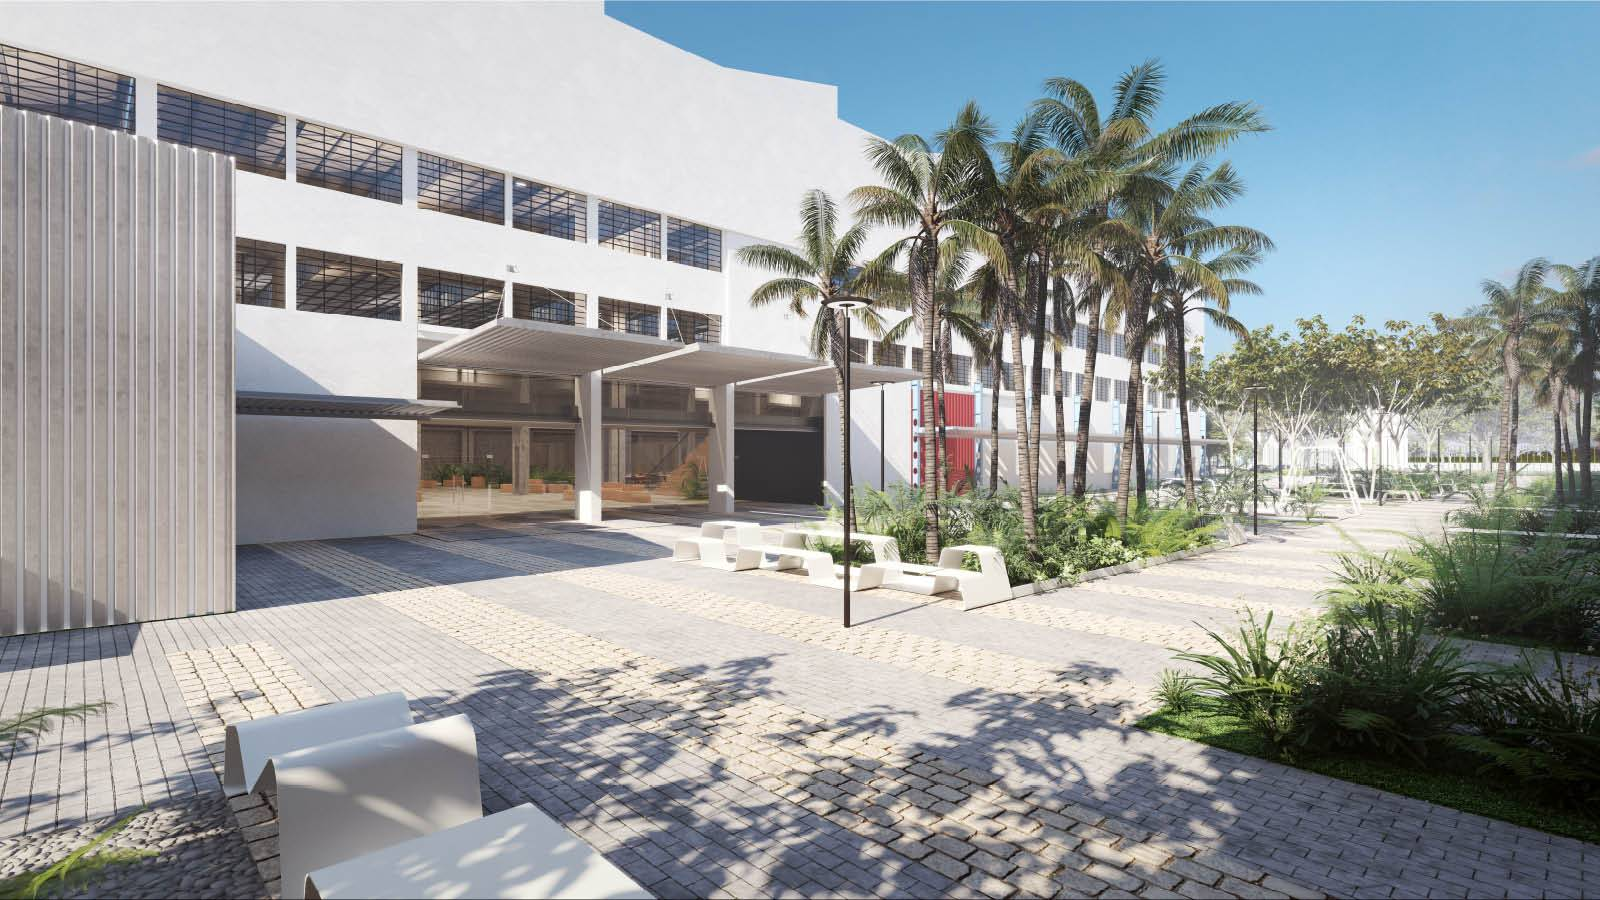 BOULEVARD VIEW - State - SPOL Architects